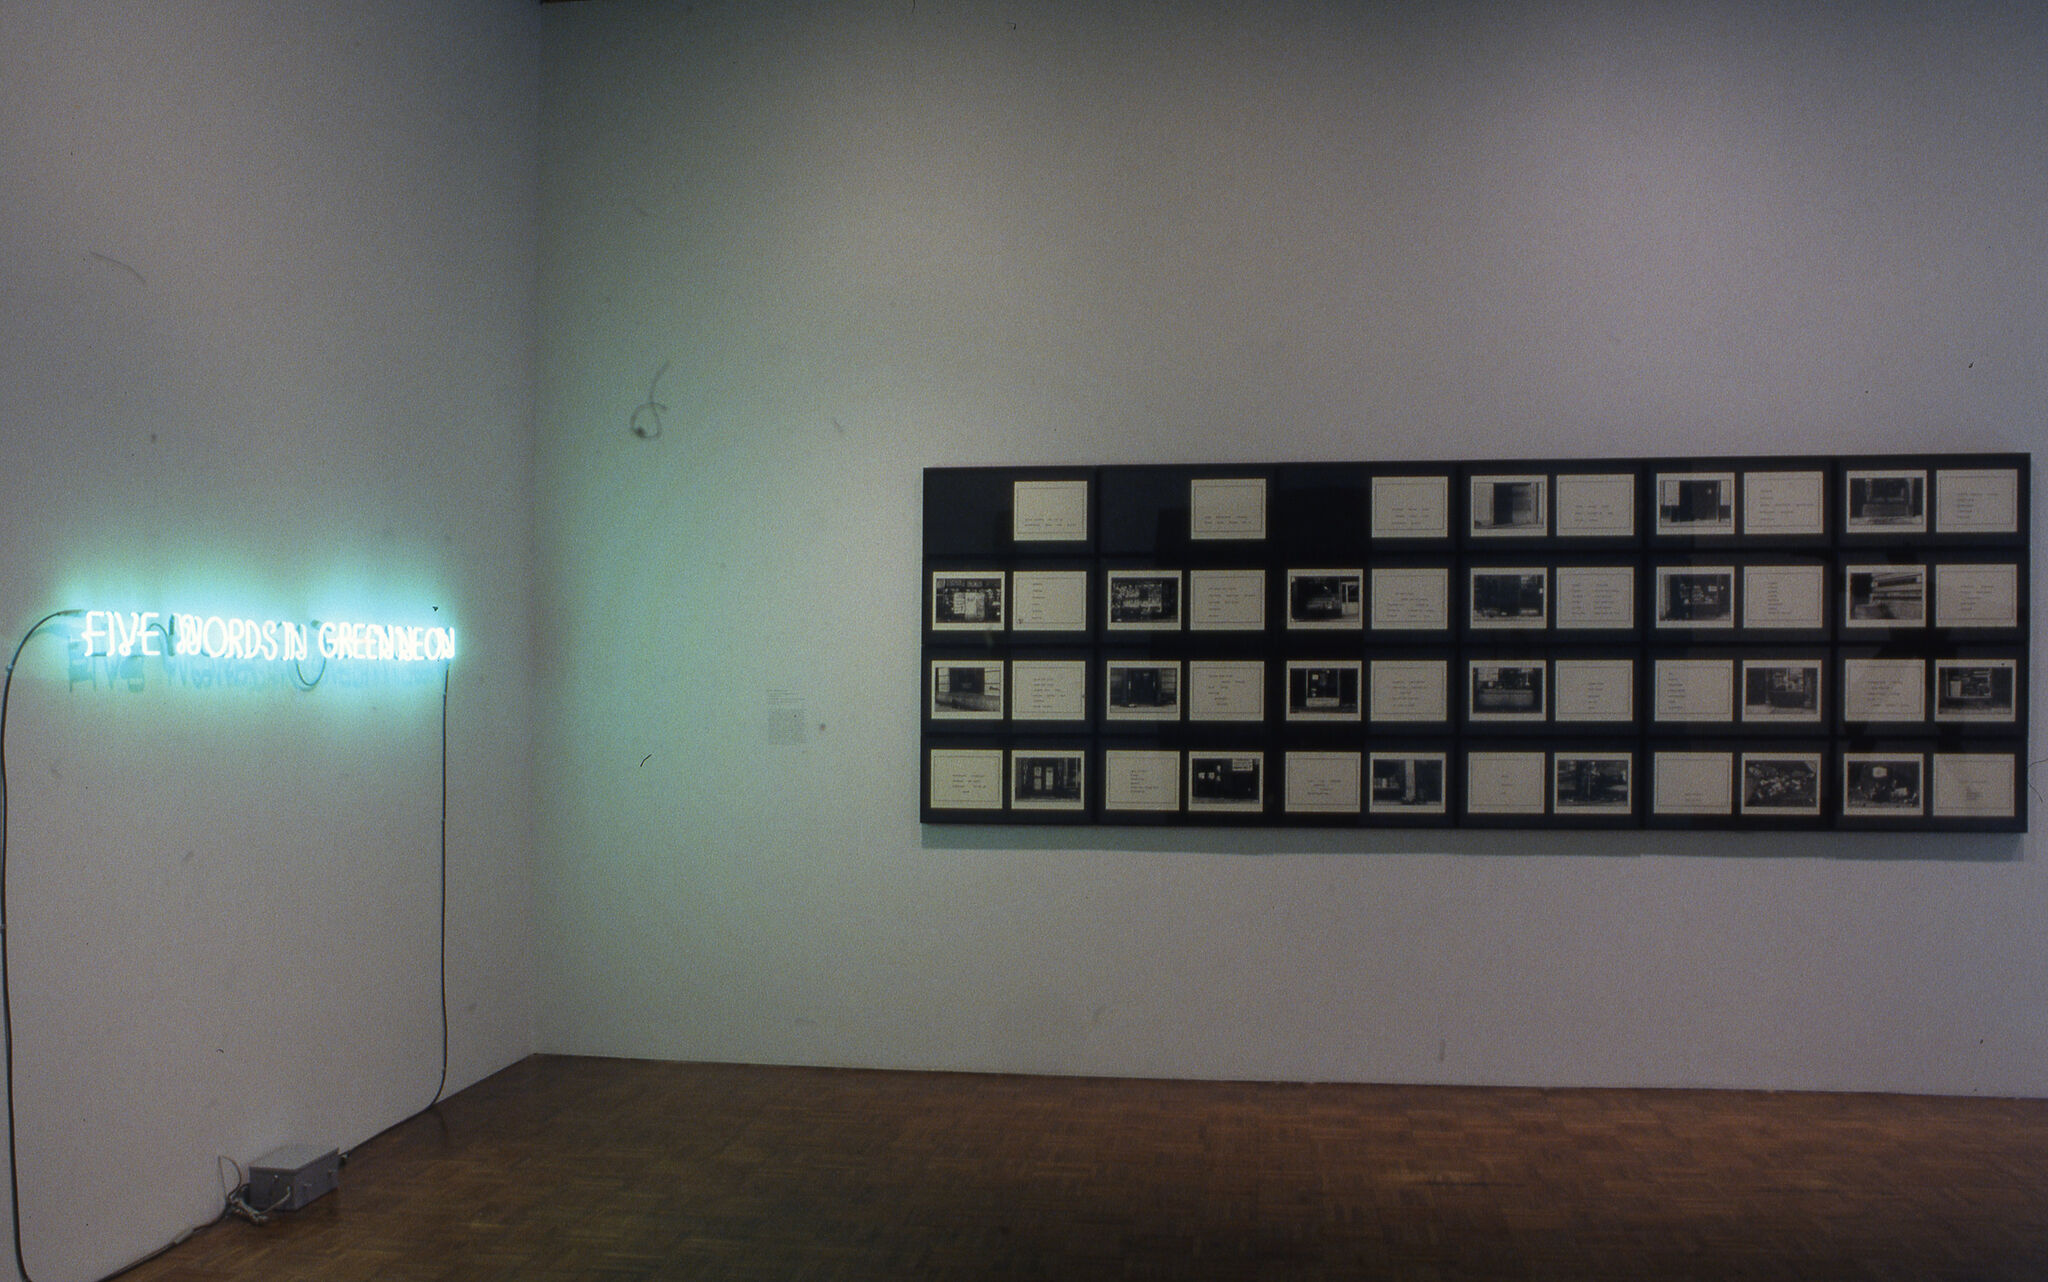 A gallery with a display of a green neon sign, along with a rectangular grid of photos.